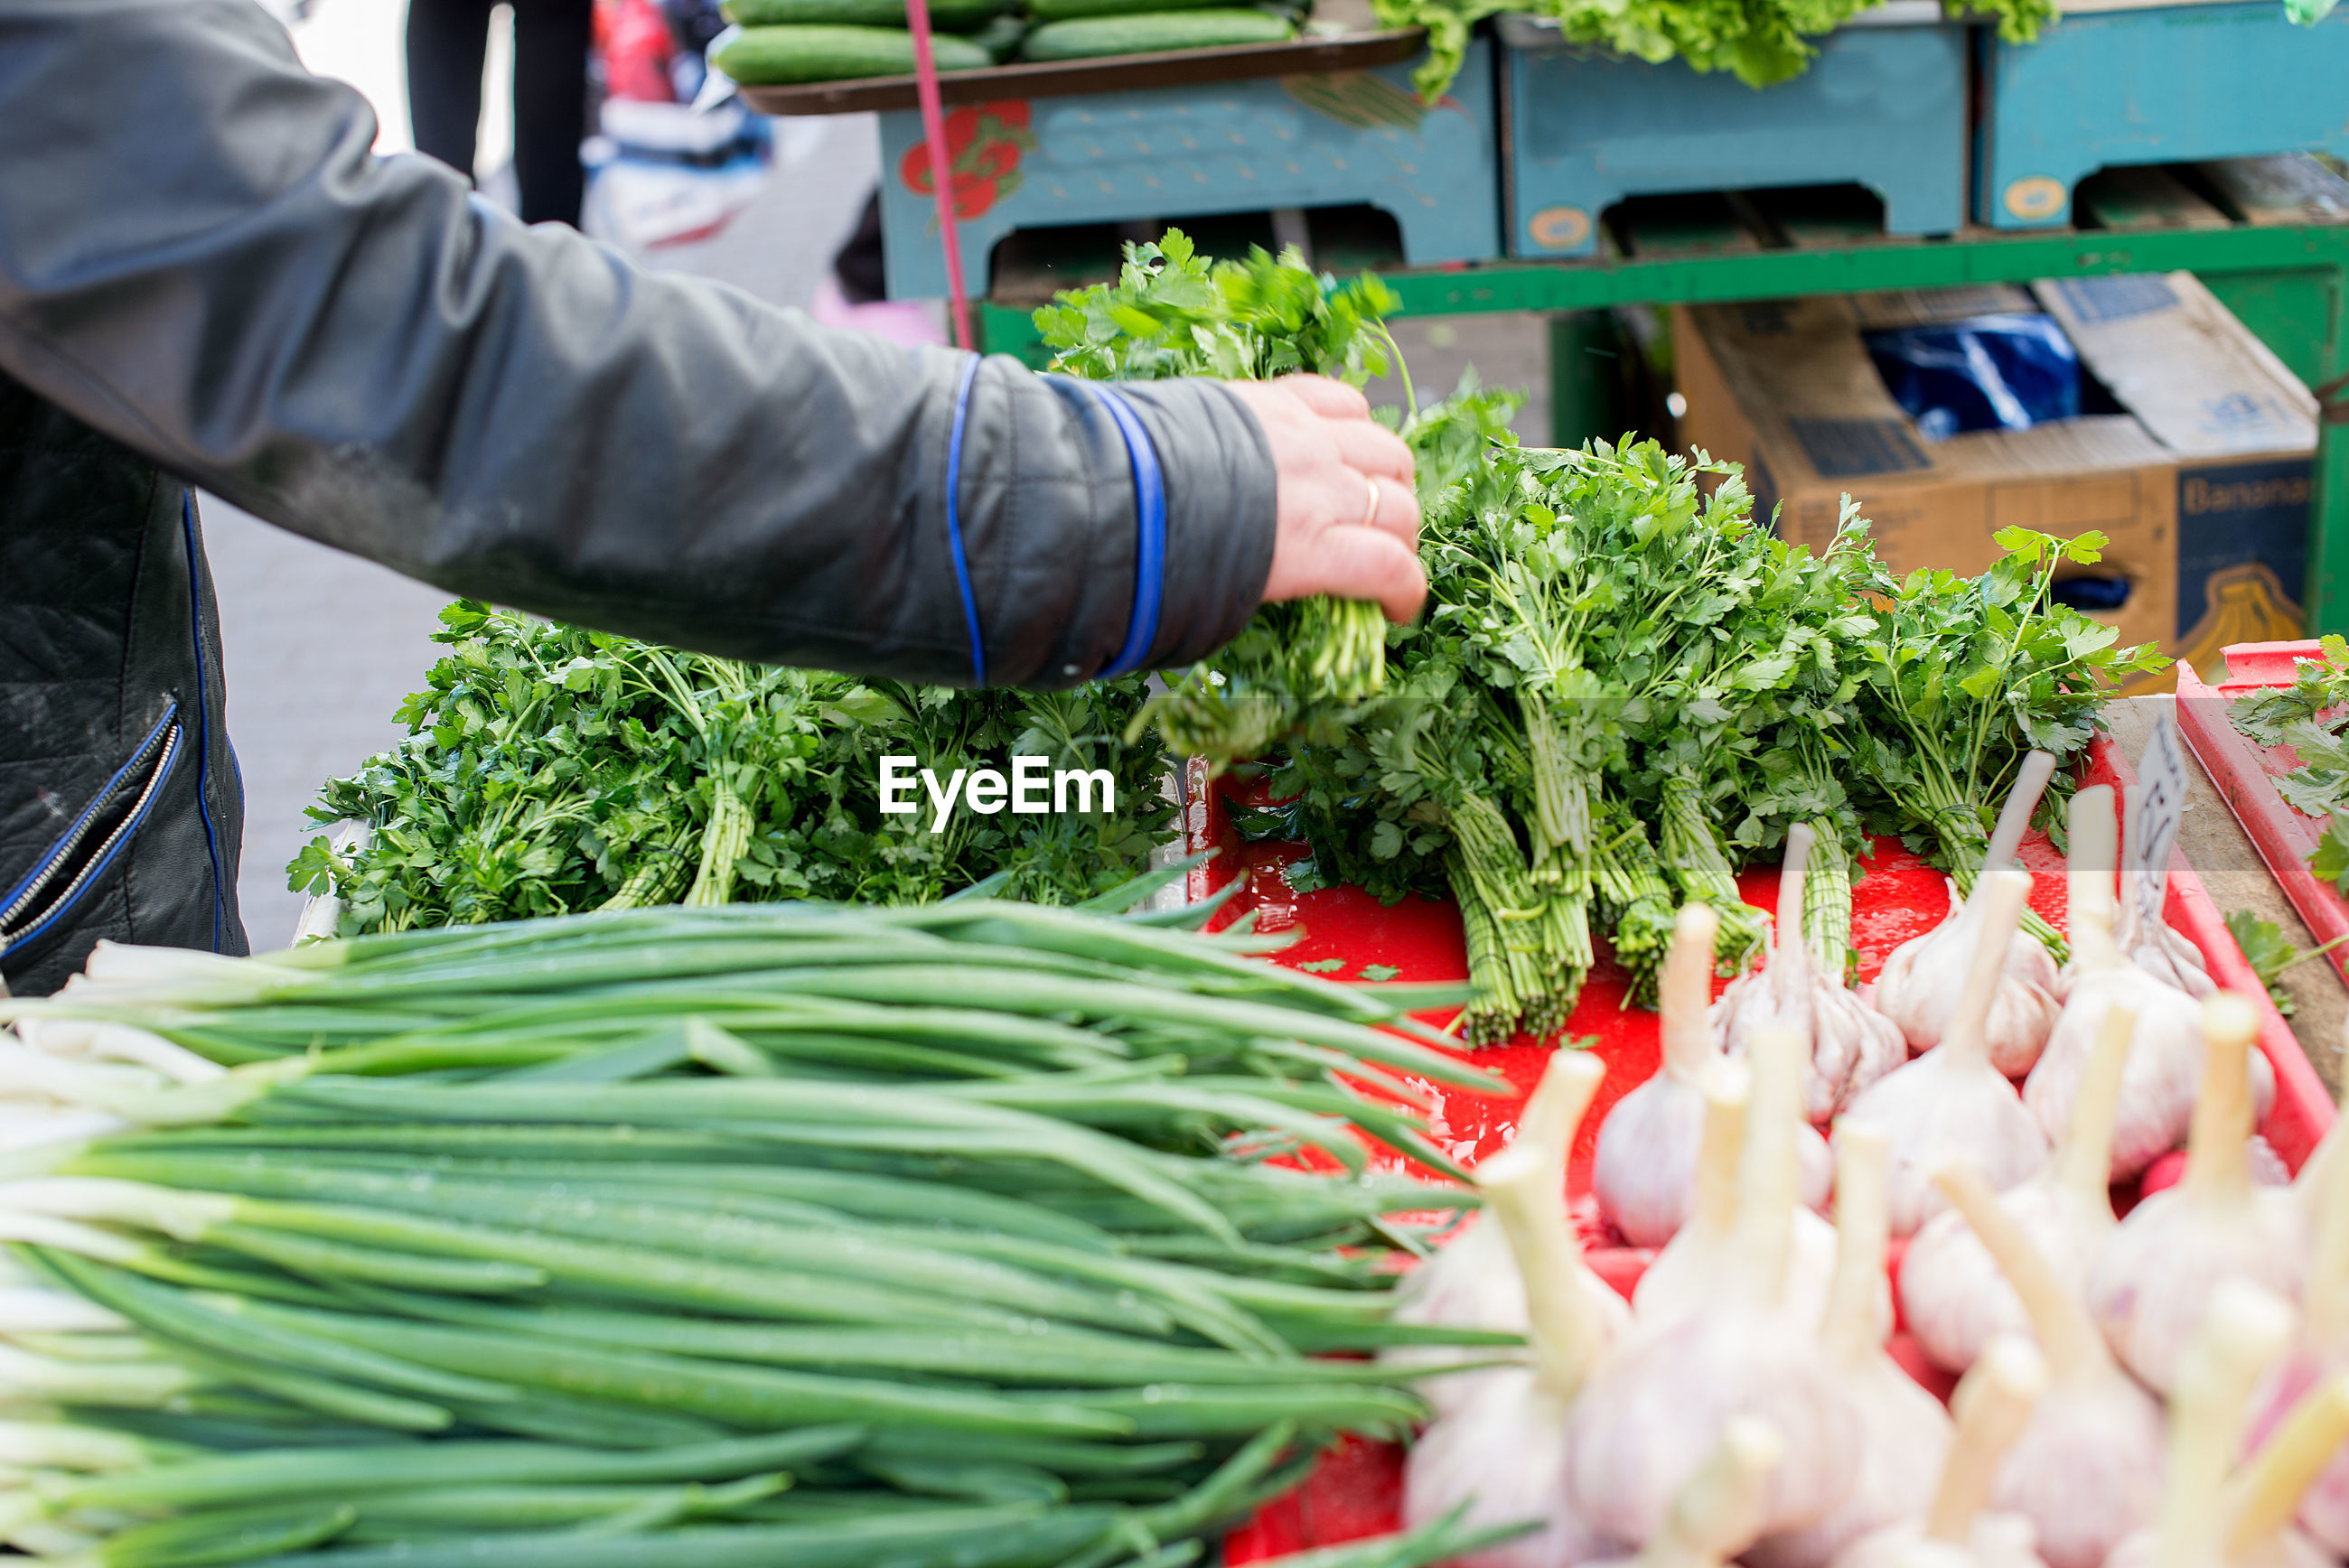 Cropped image of person buying vegetables at market